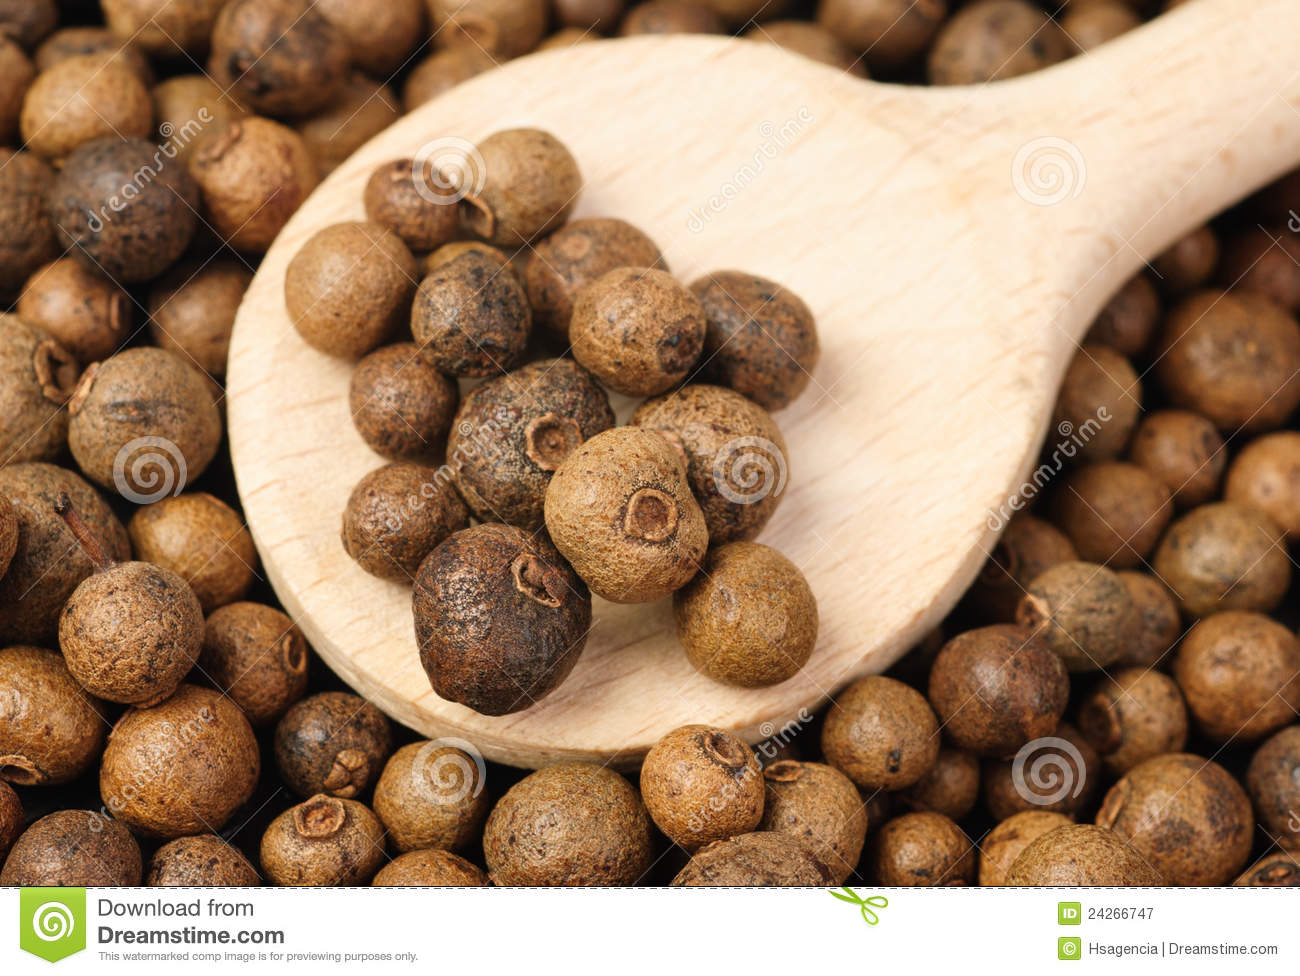 Hole allspice(jamaica pepper) with wooden spoon